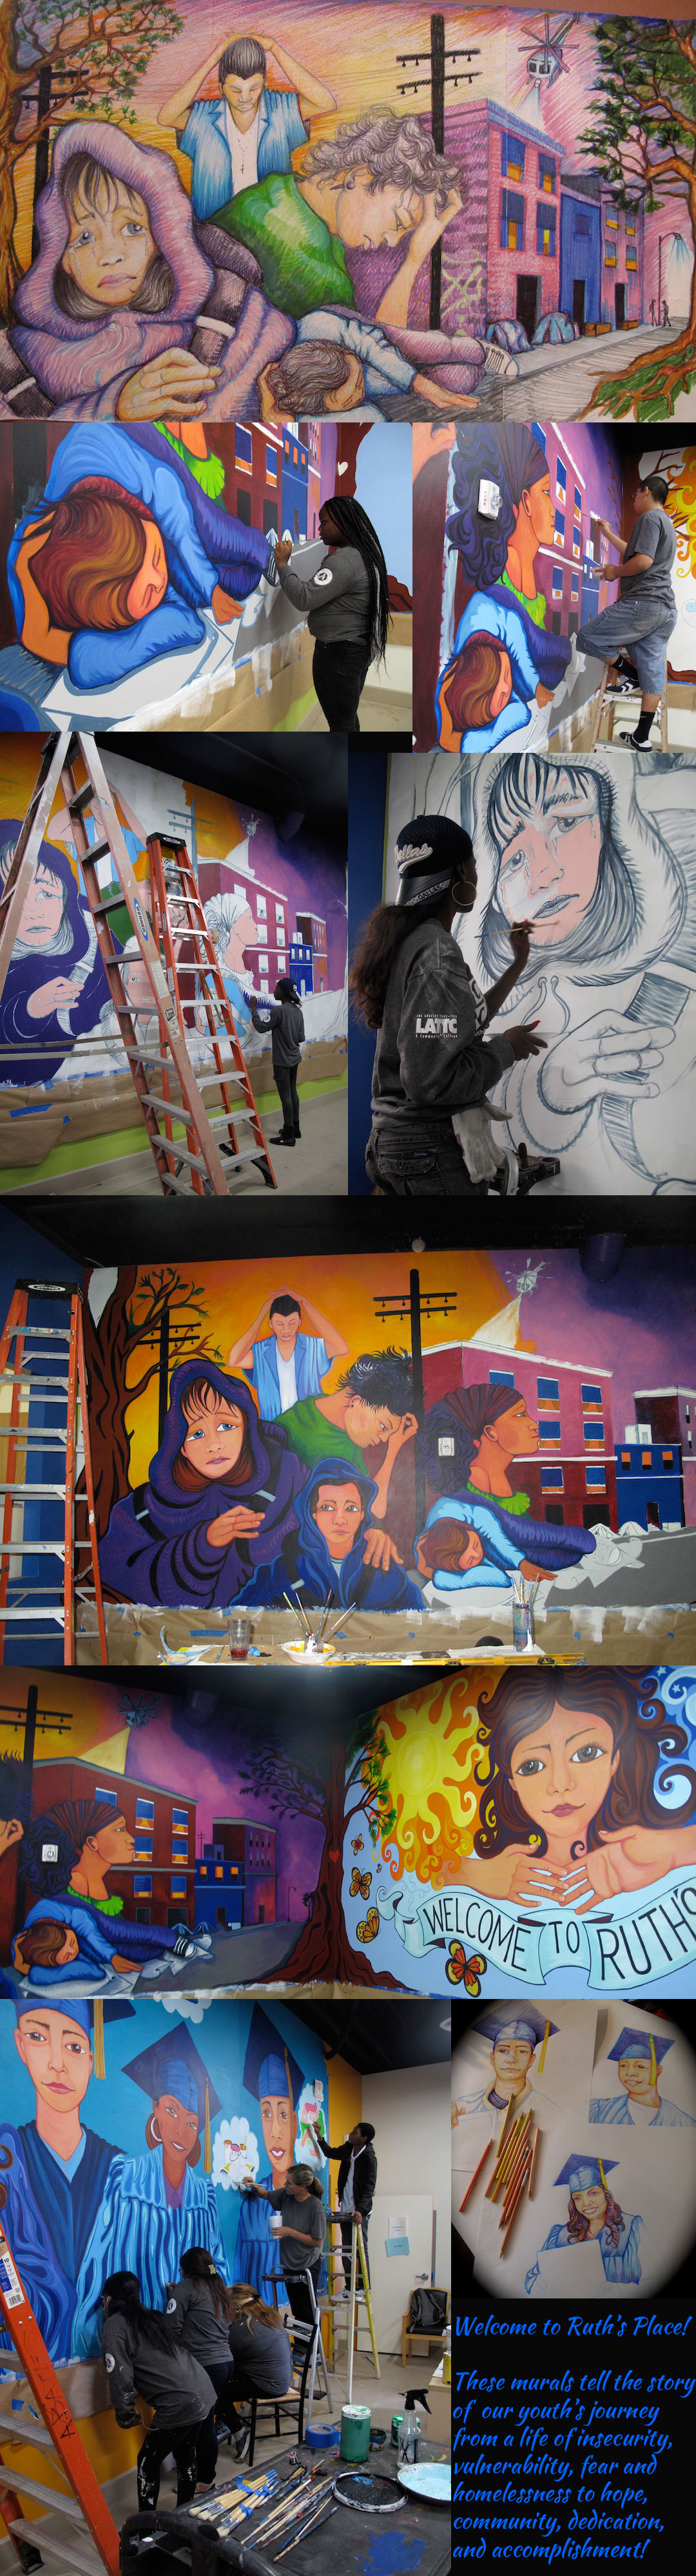 Mural in collaboration with the Coalition for Responsible Community Development (CRCD)